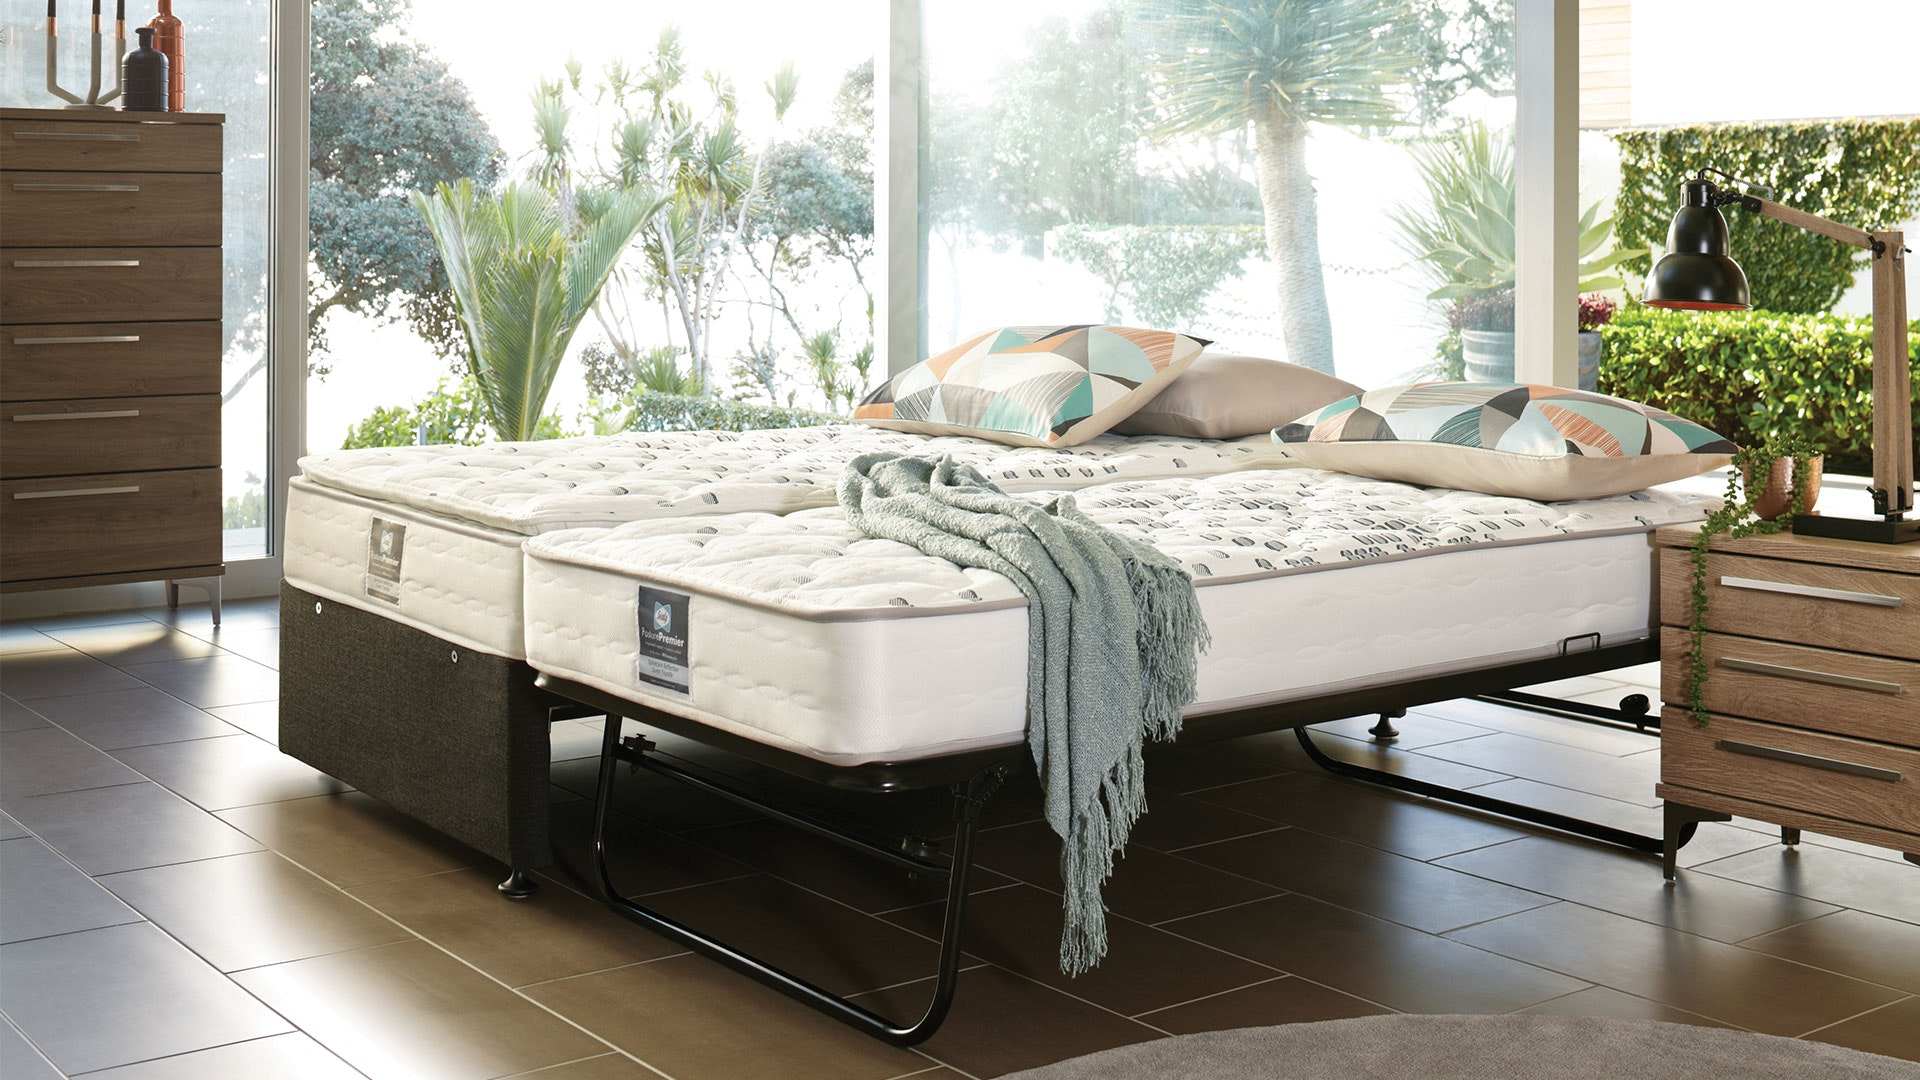 Spinecare Reflection Guest Trundle Bed by Sealy